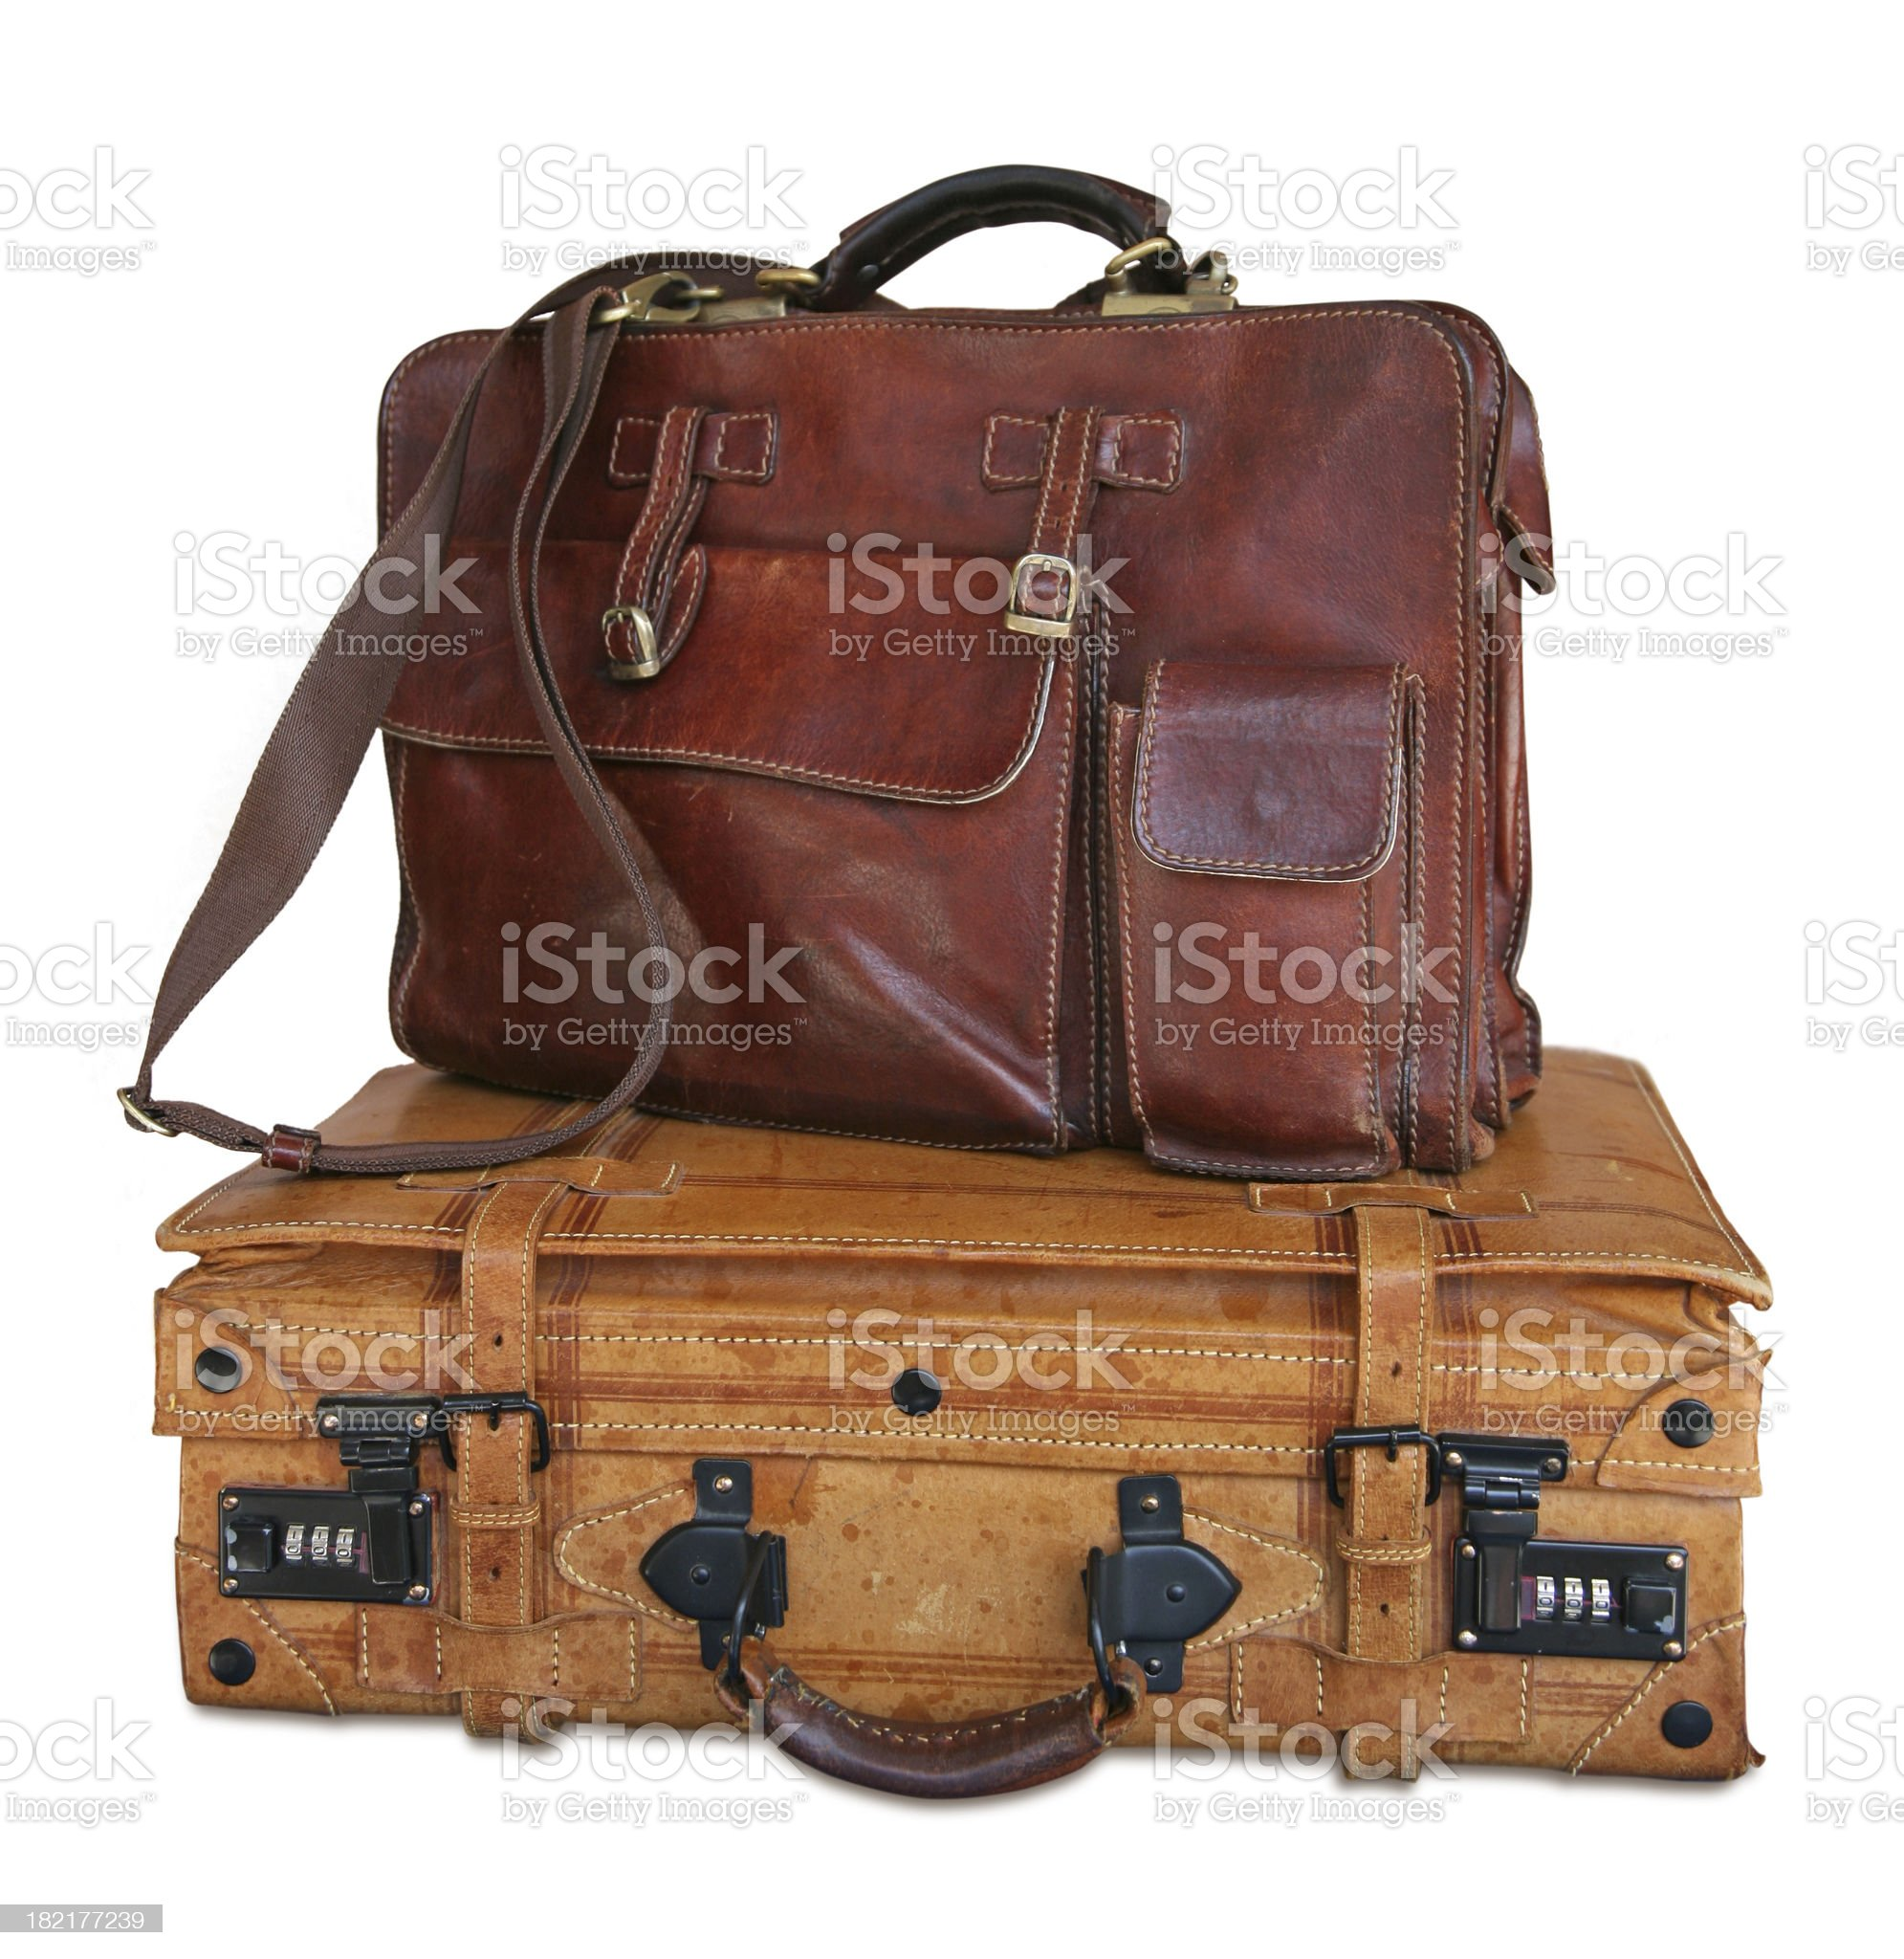 Leather luggage royalty-free stock photo